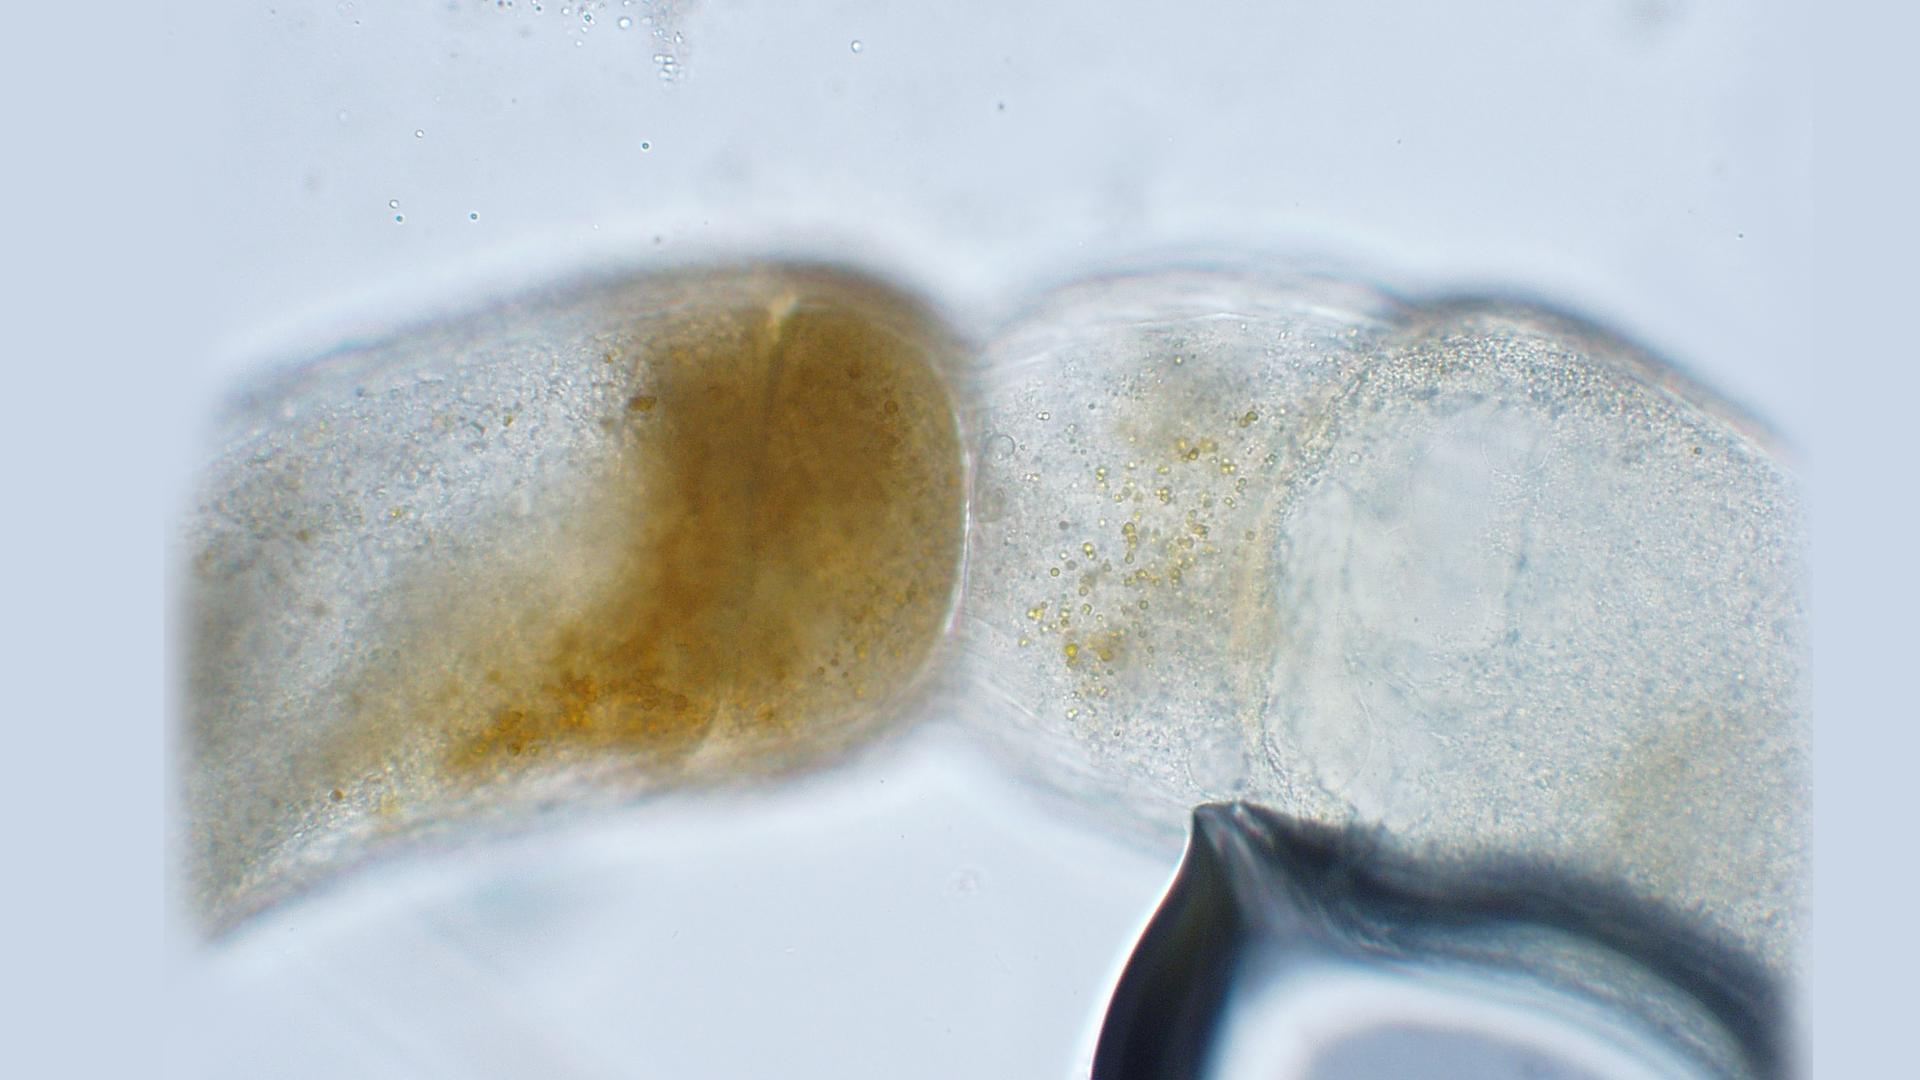 Gametangia in culture of Phycomyces